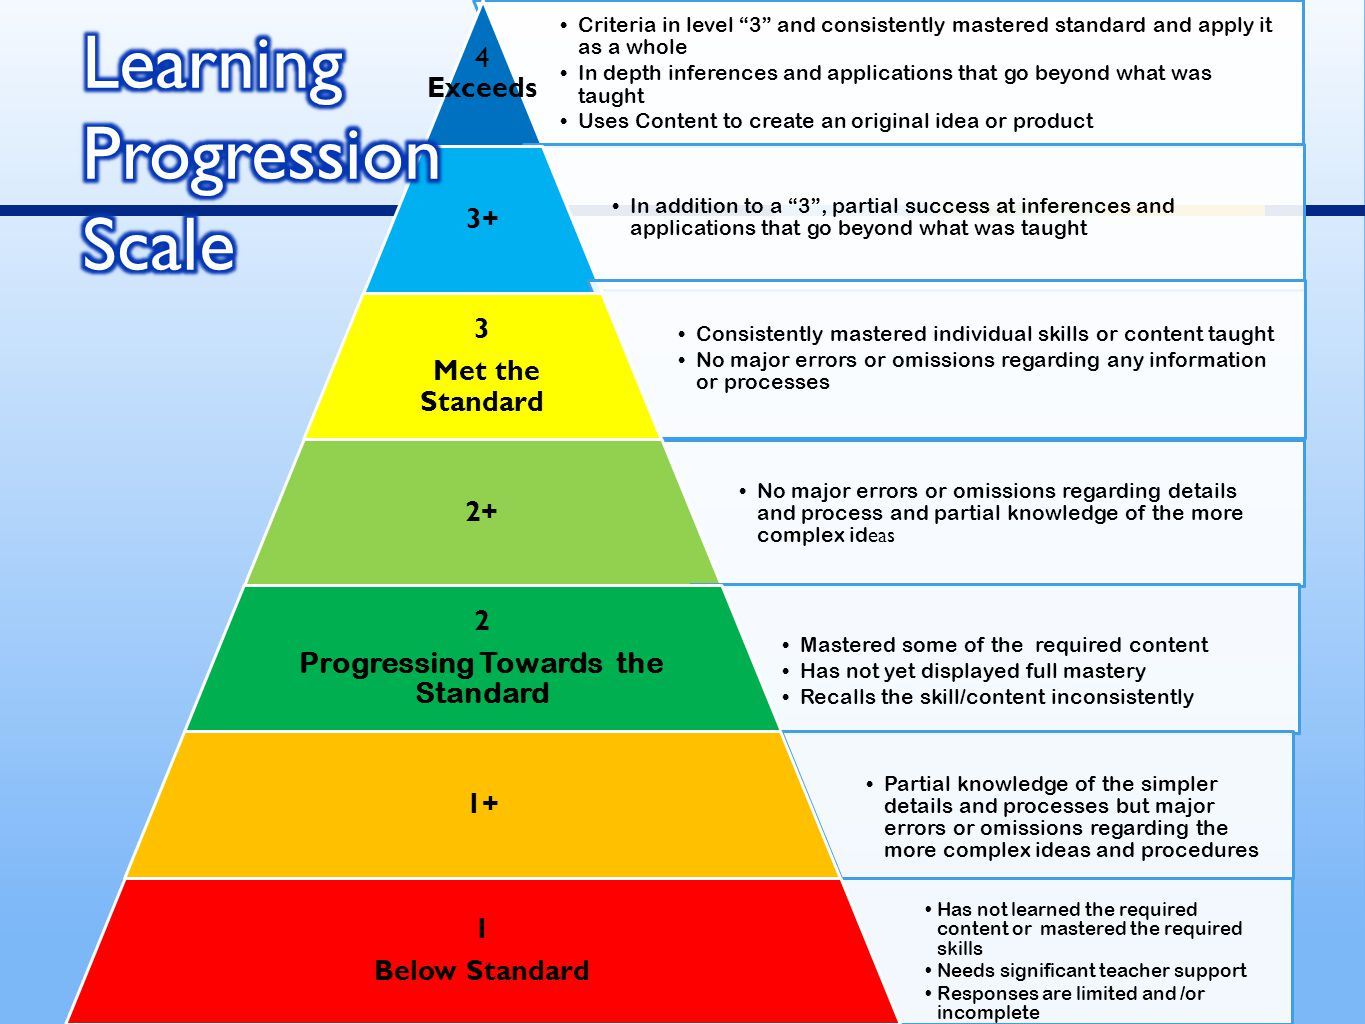 Criteria in level 3 and consistently mastered standard and apply it as a whole In depth inferences and applications that go beyond what was taught Uses Content to create an original idea or product 4 Exceeds In addition to a 3 , partial success at inferences and applications that go beyond what was taught 3+ Consistently mastered individual skills or content taught No major errors or omissions regarding any information or processes 3 Met the Standard No major errors or omissions regarding details and process and partial knowledge of the more complex id eas 2+ Mastered some of the required content Has not yet displayed full mastery Recalls the skill/content inconsistently 2 Progressing Towards the Standard Partial knowledge of the simpler details and processes but major errors or omissions regarding the more complex ideas and procedures 1+ Has not learned the required content or mastered the required skills Needs significant teacher support Responses are limited and /or incomplete 1 Below Standard